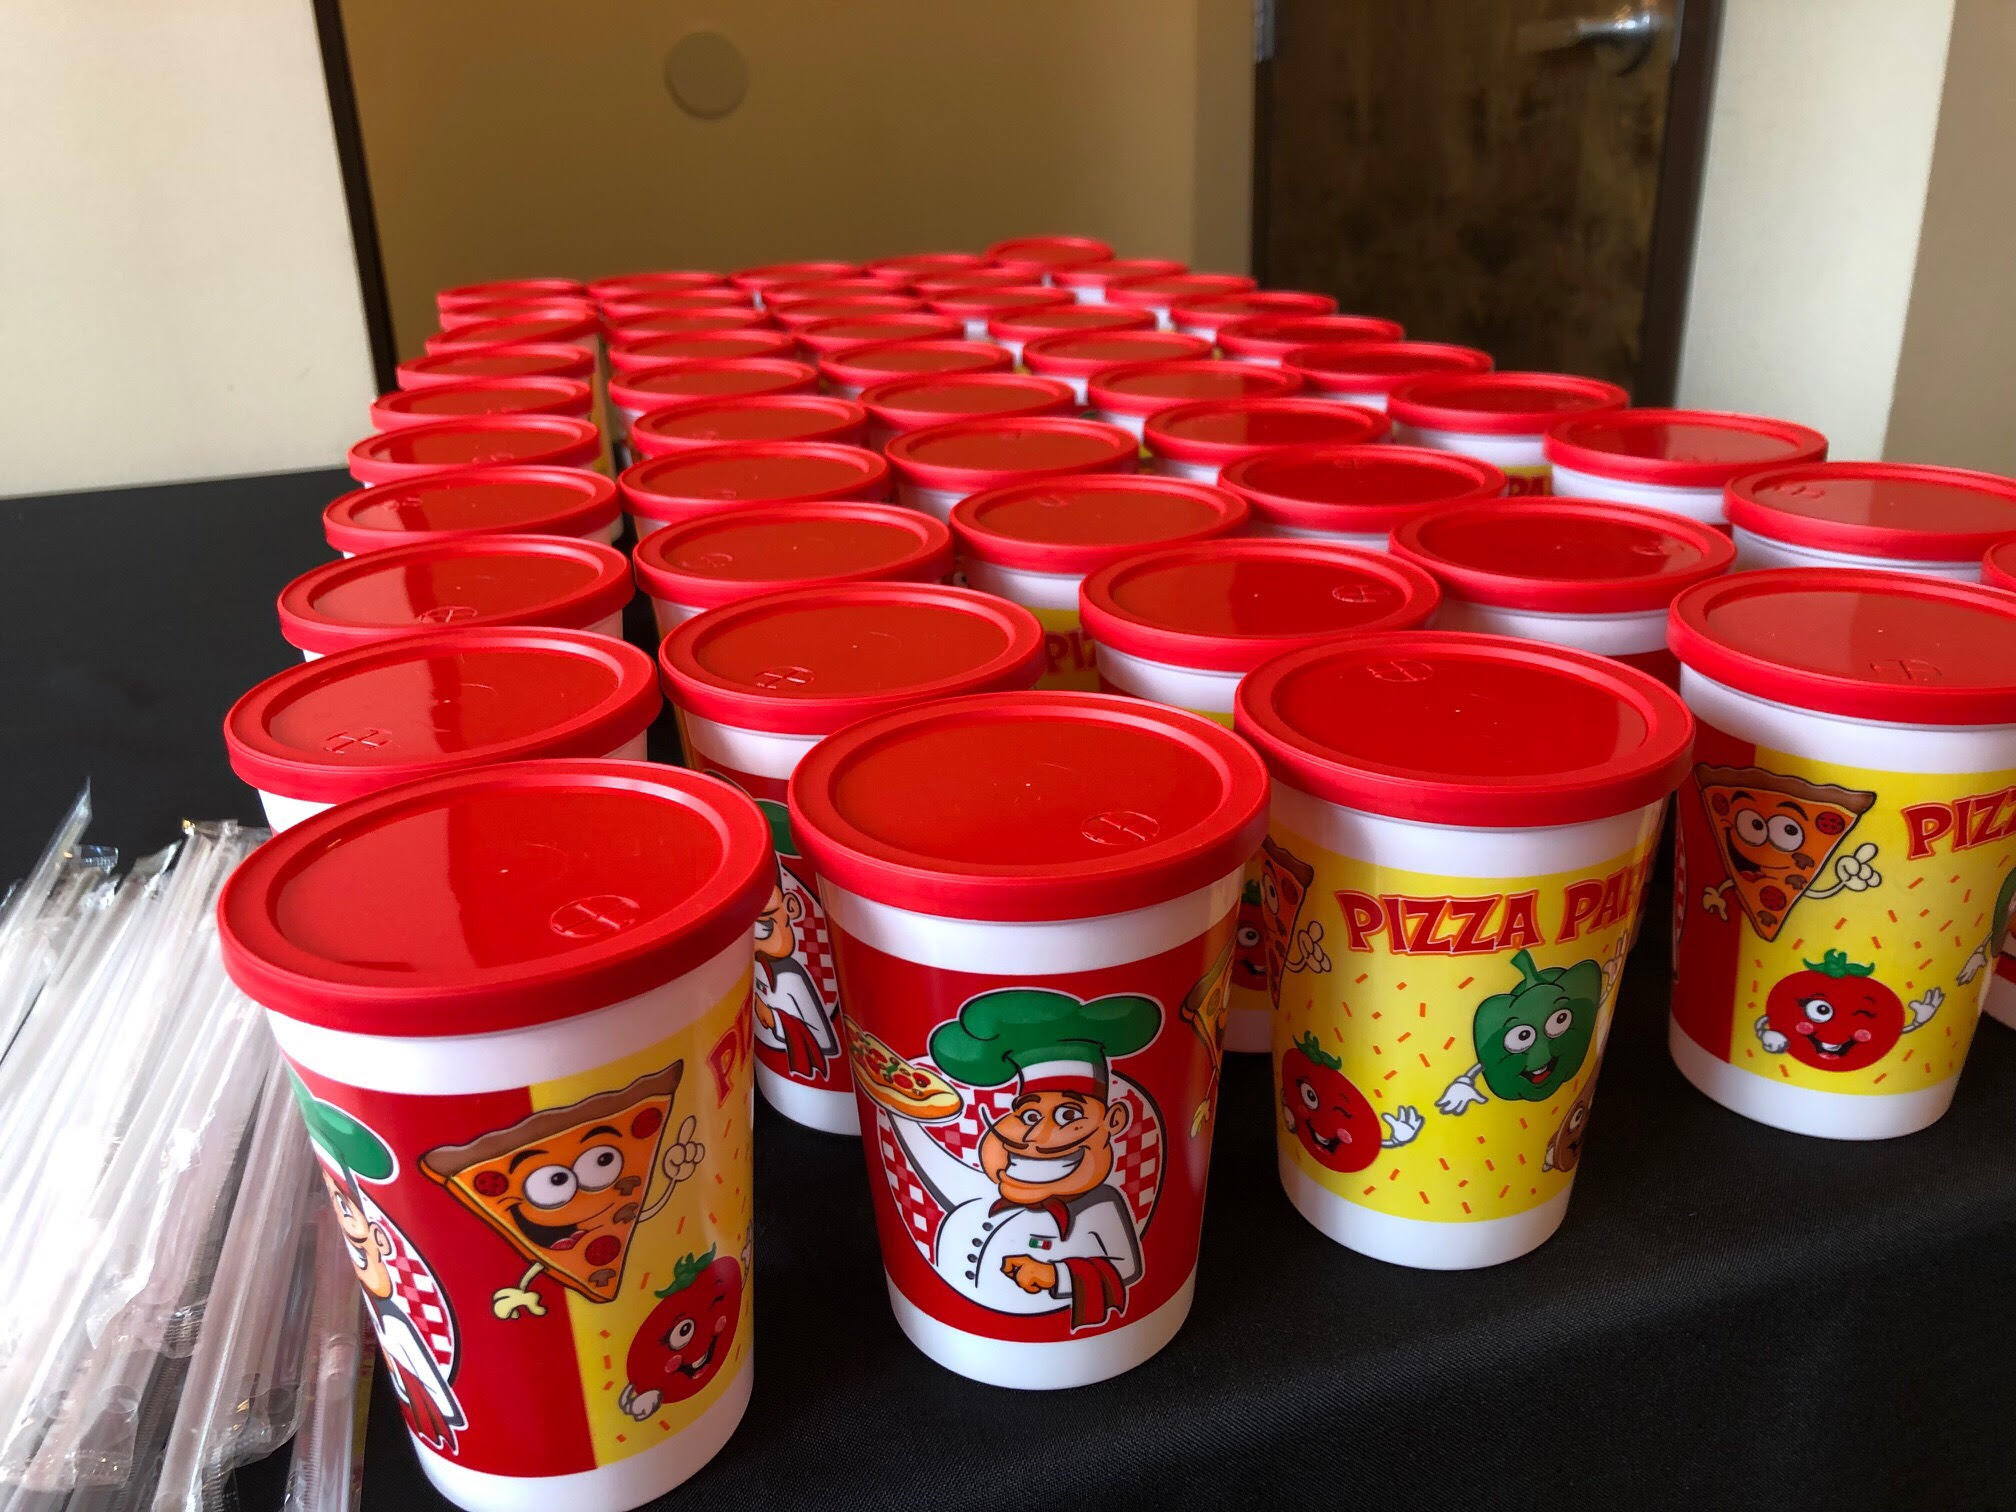 pizzarageous childrens birthday party fun cups